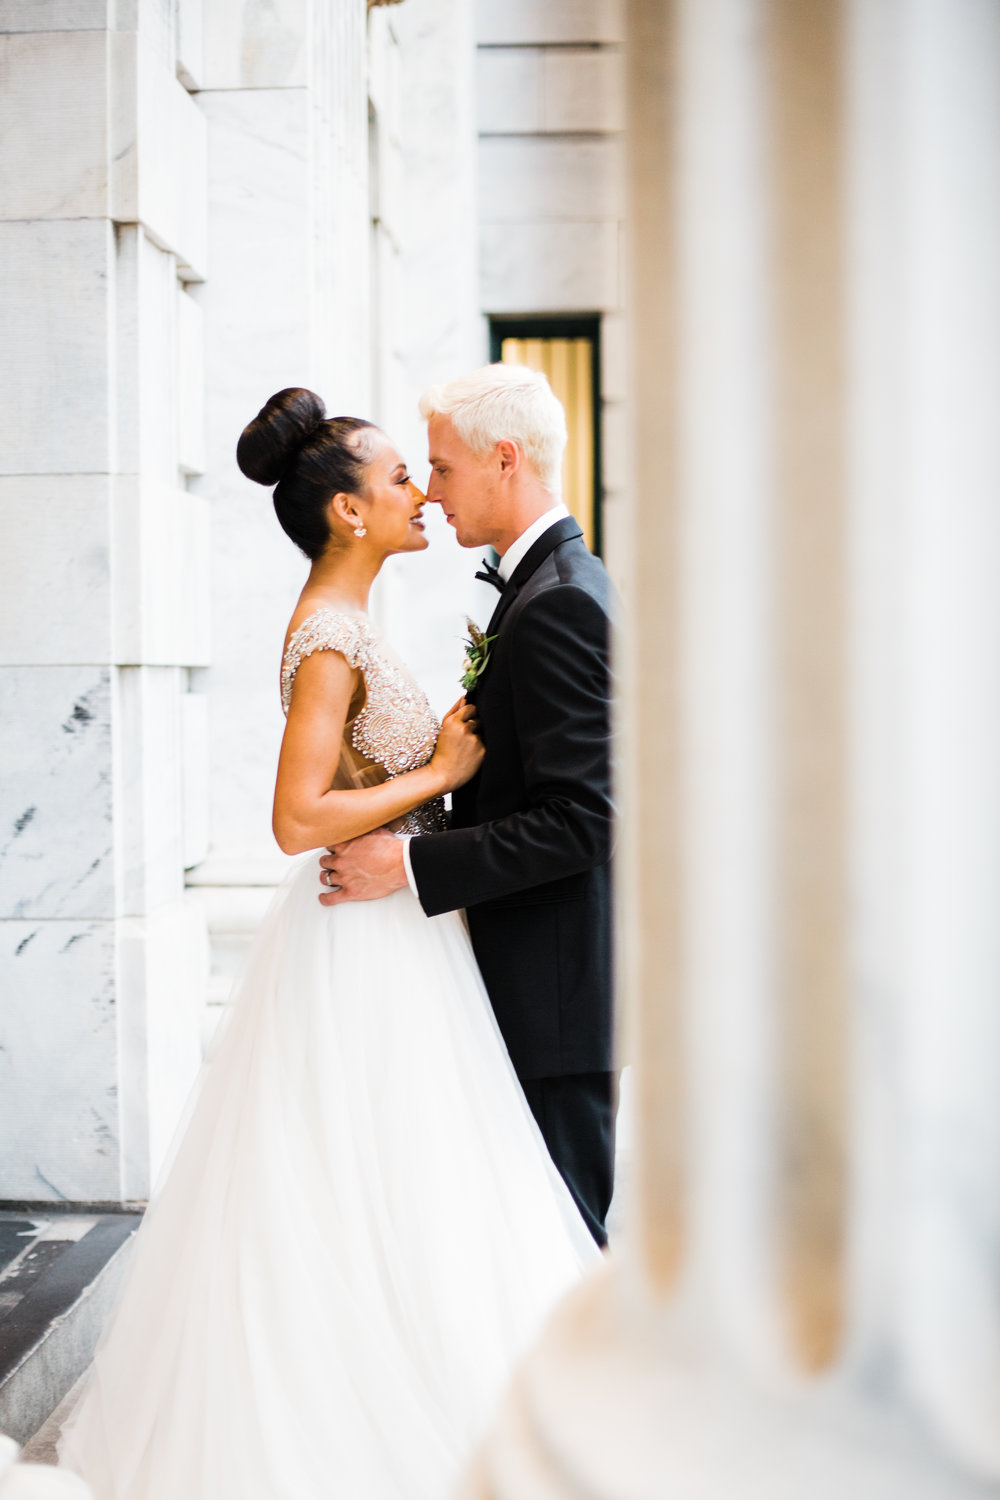 Weddings - A new chapter